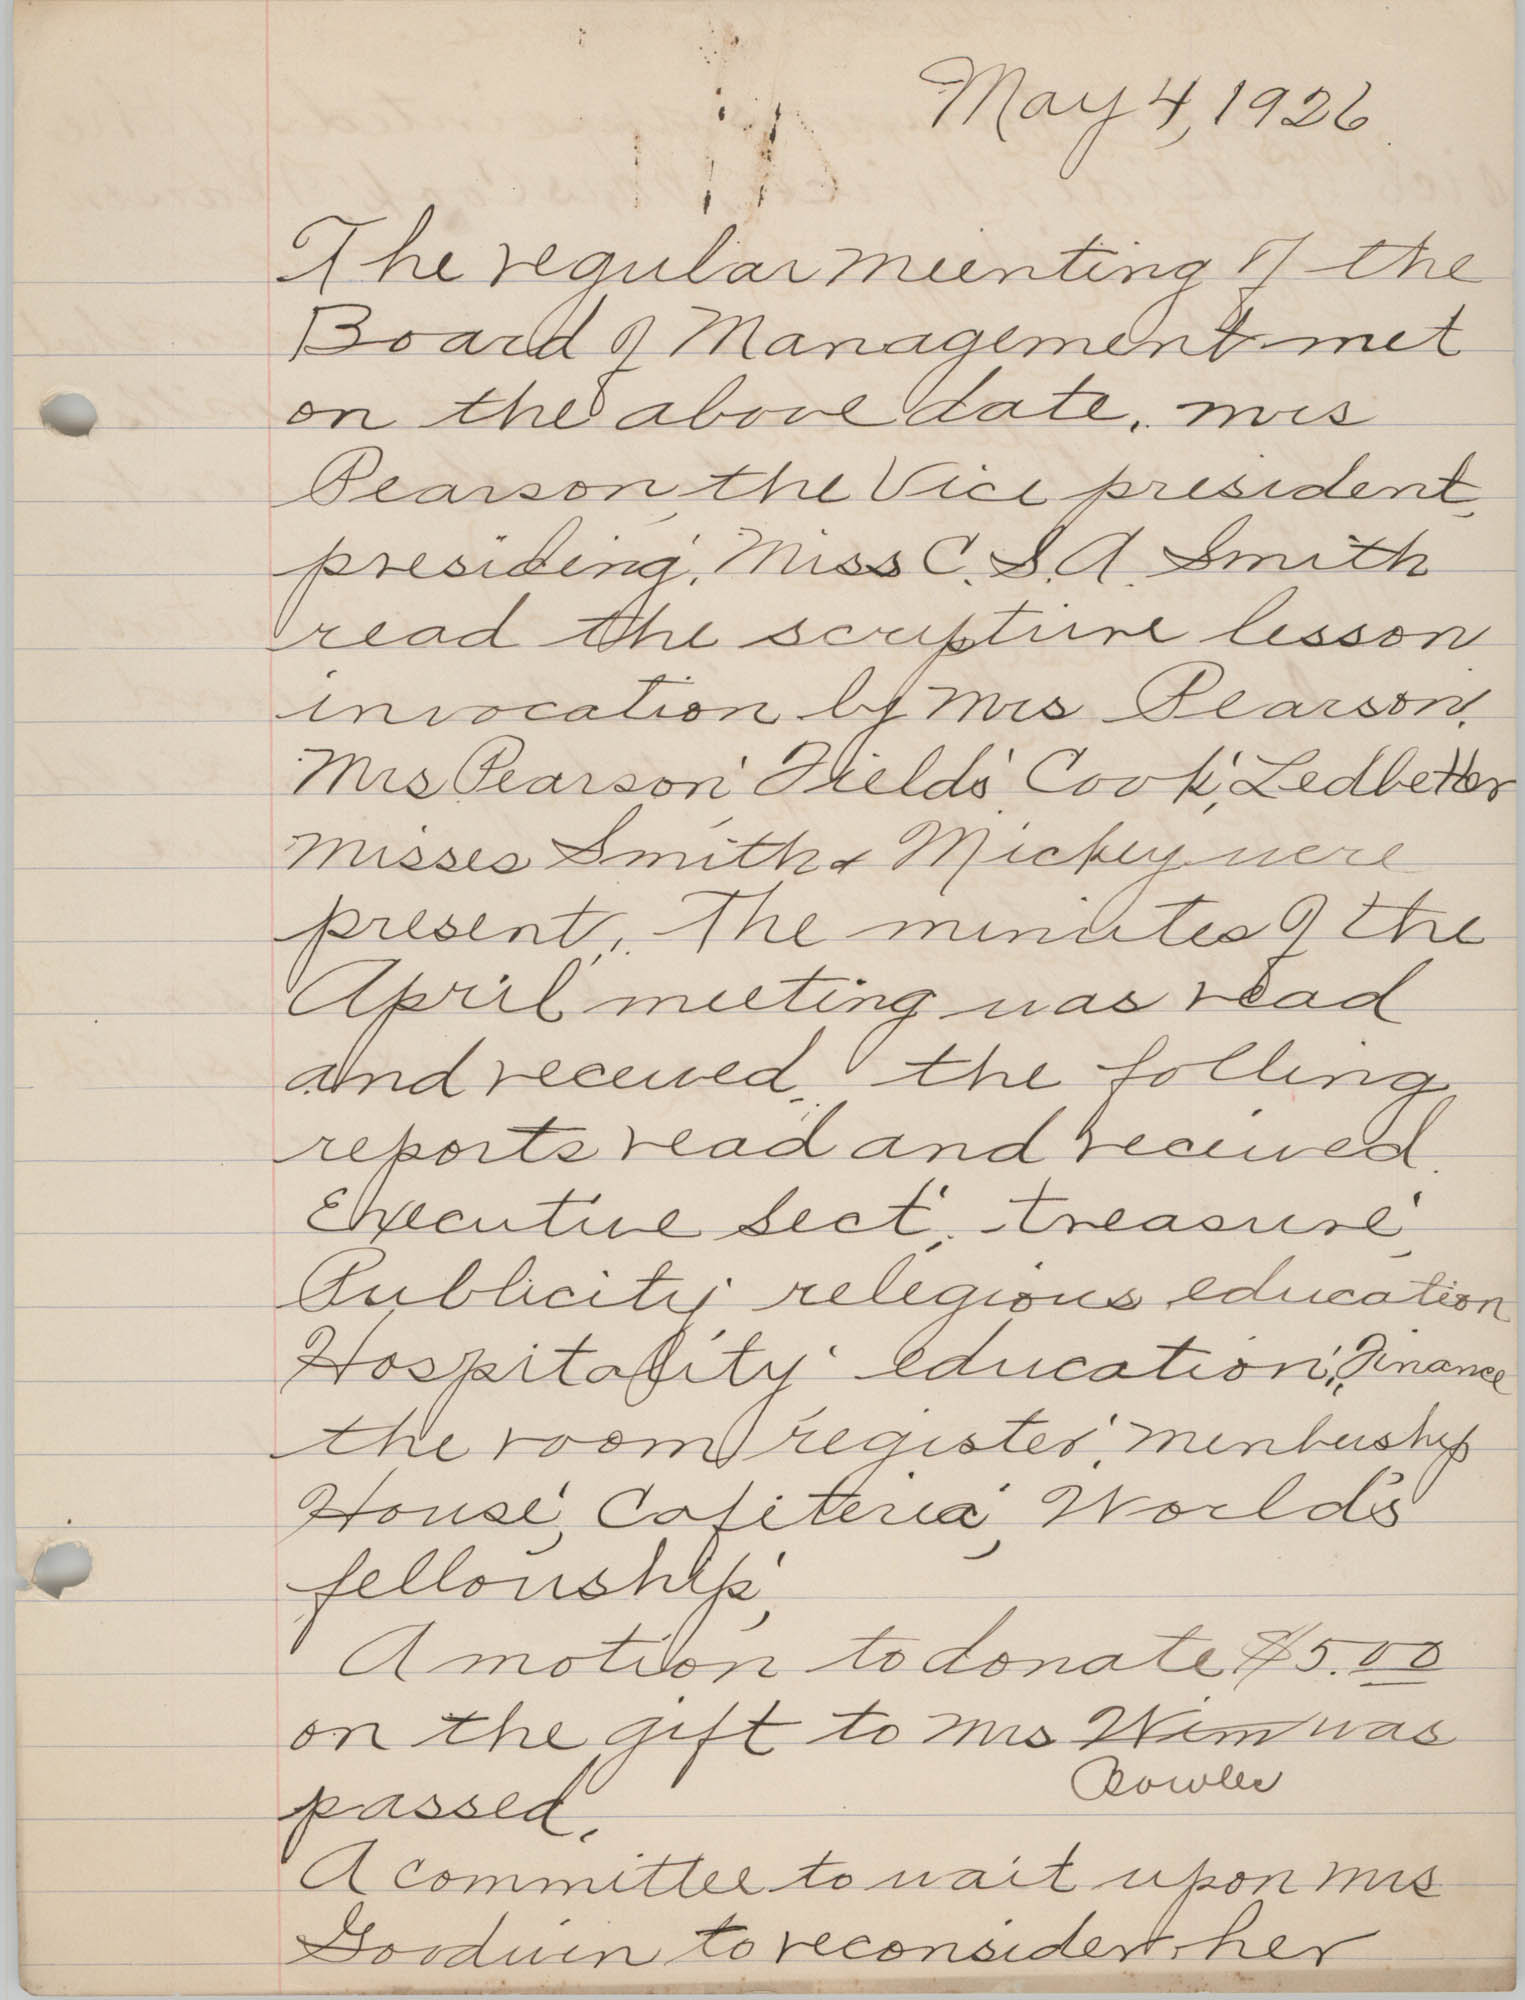 Minutes to the Board of Management, Coming Street Y.W.C.A., May 4, 1926